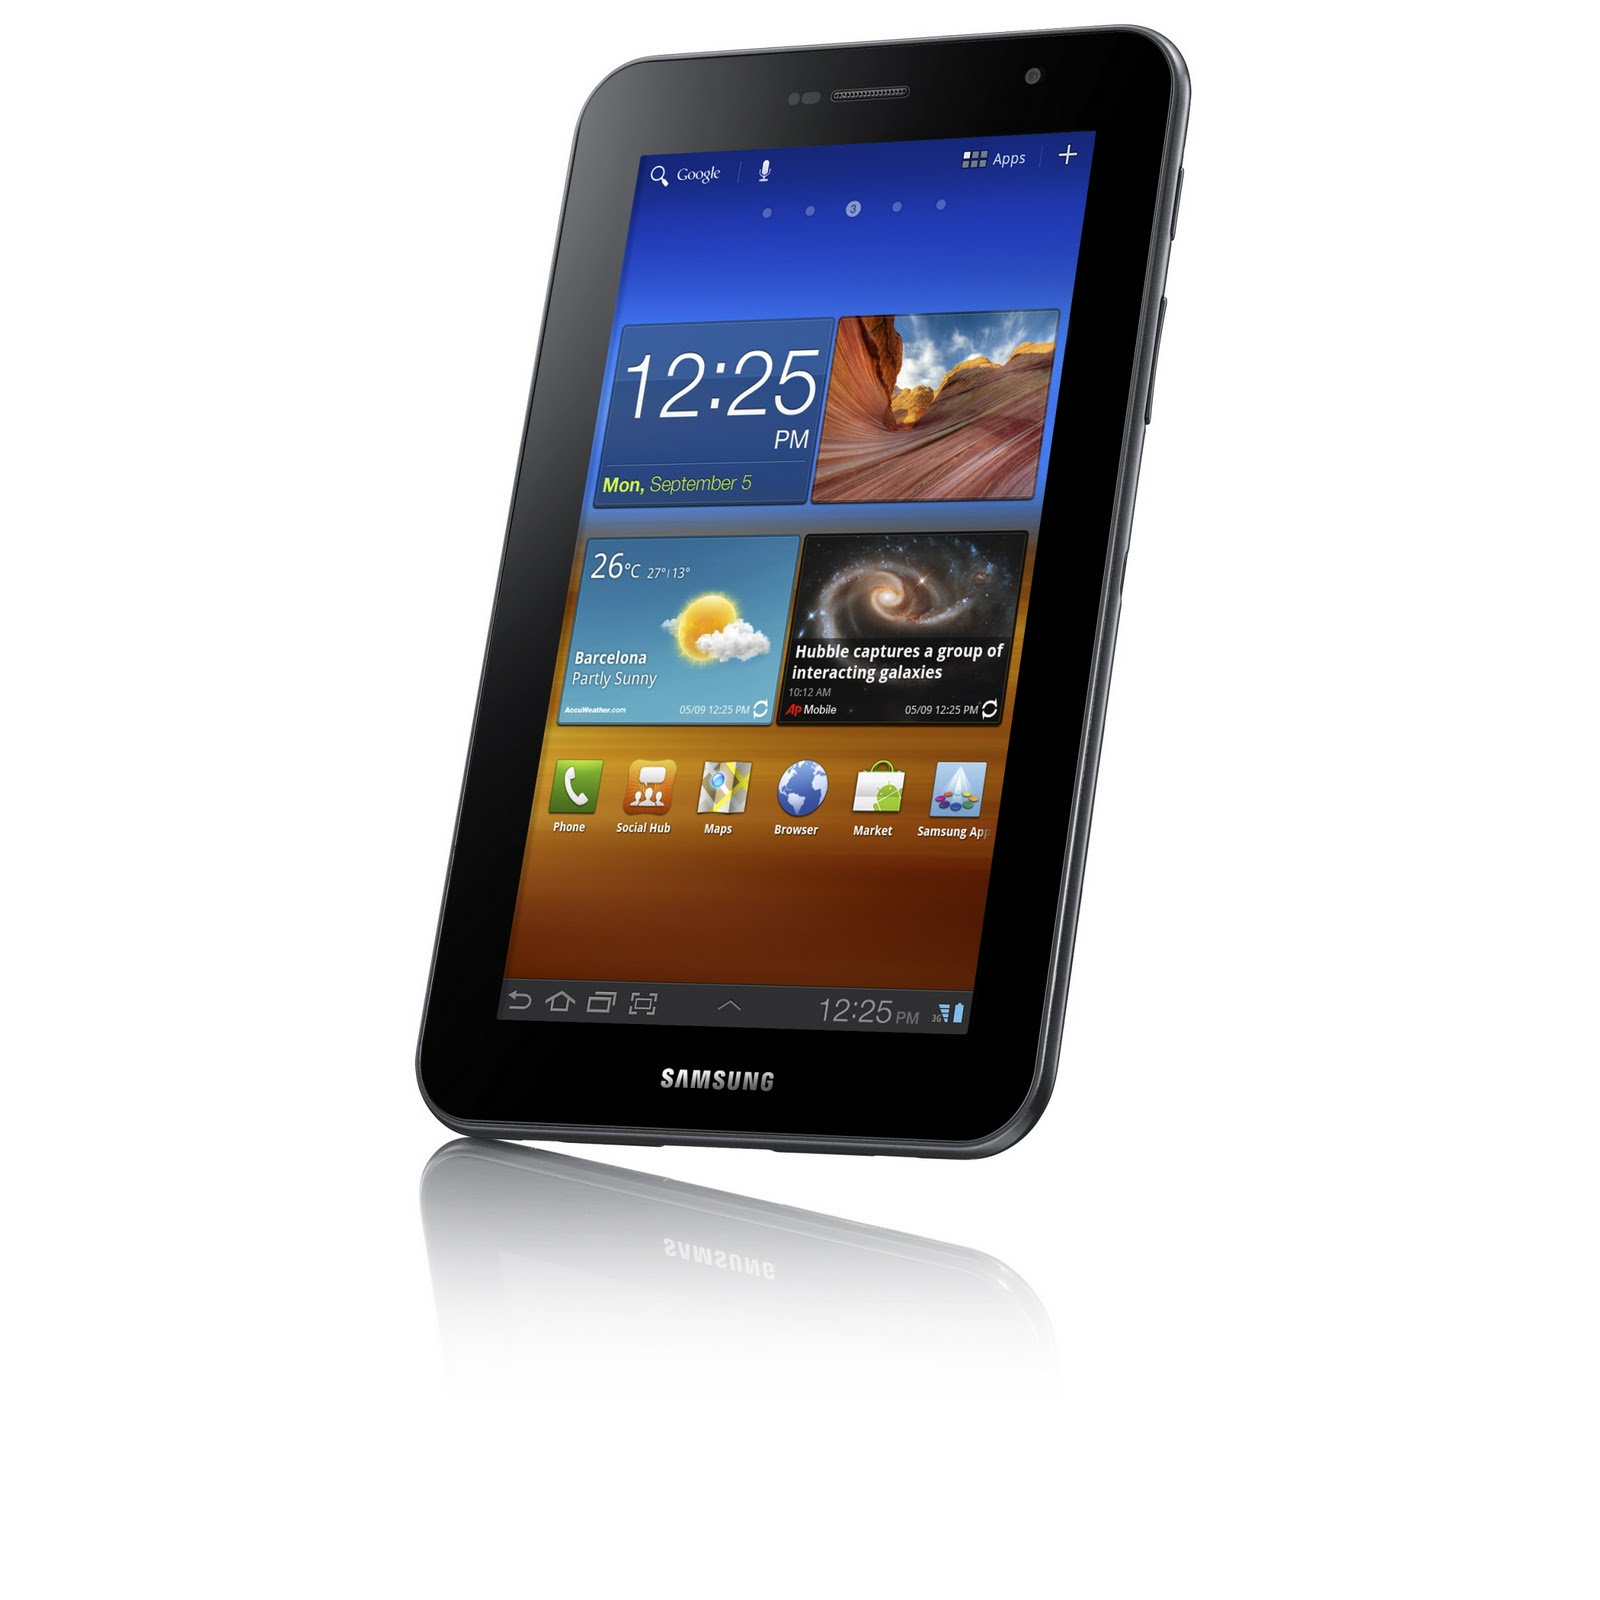 Galaxy Tab 7.0 Plus is a 7 inches medium range Android tablet from